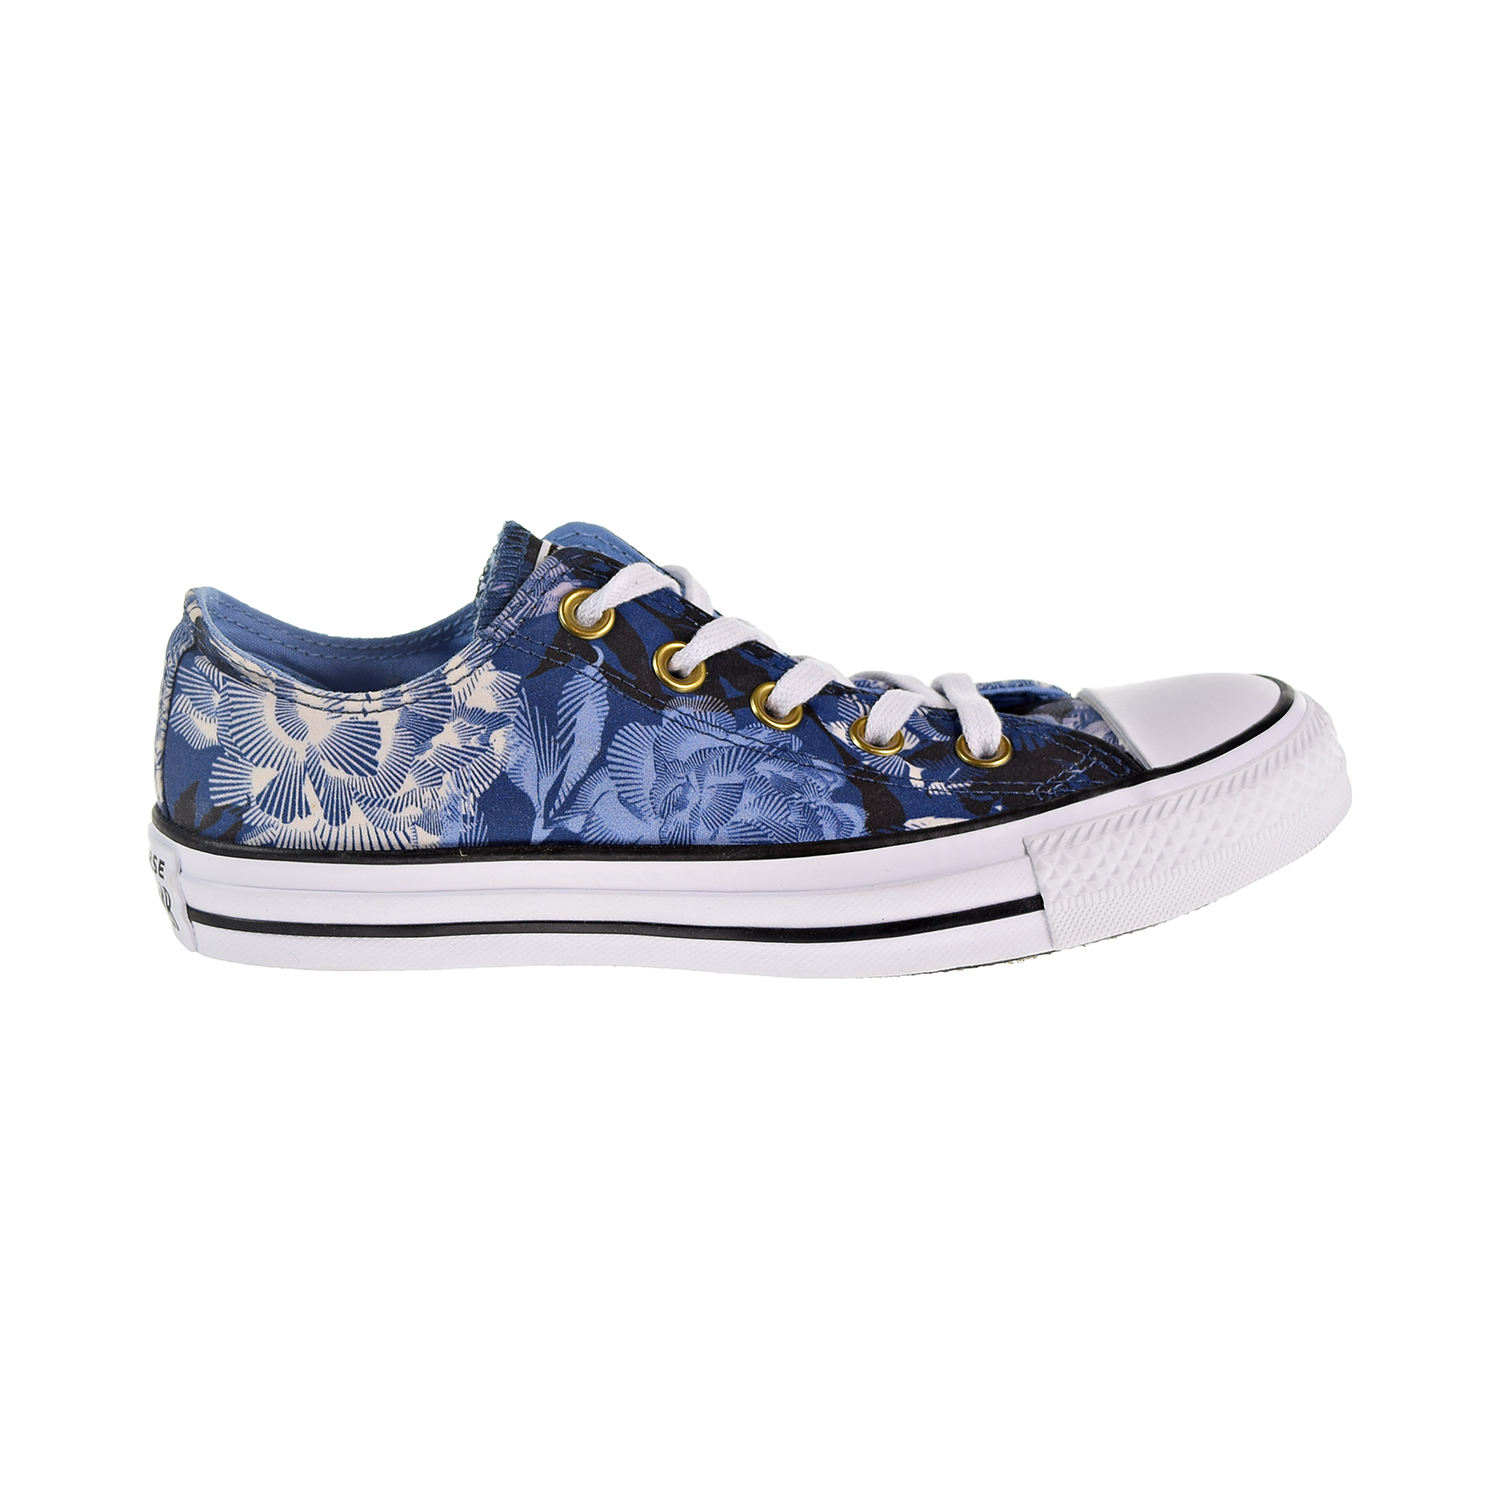 c48a7264c4be Details about Converse Chuck Taylor All Star Ox Floral Women s Shoes Mason  Blue 561643f